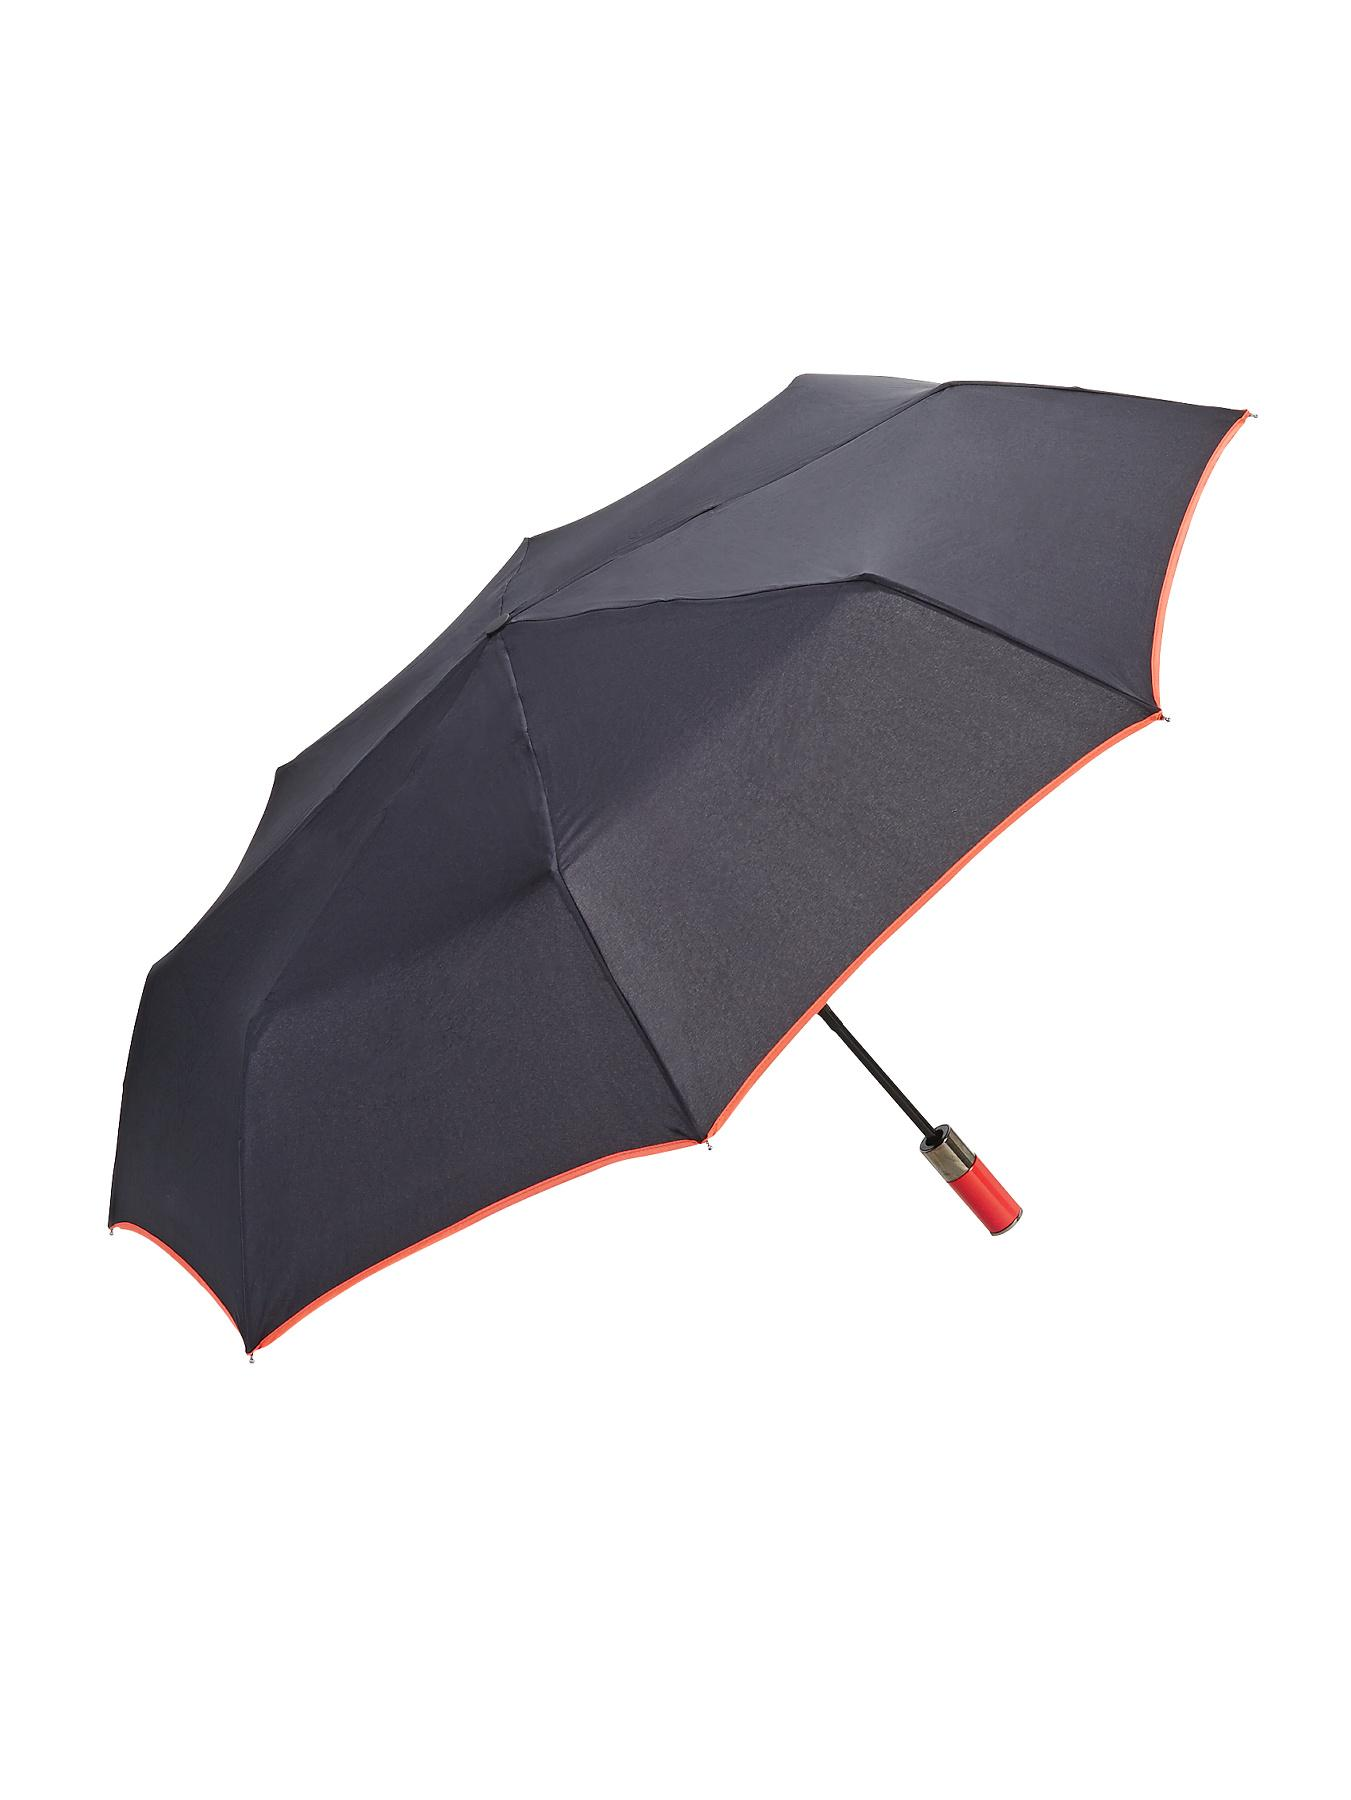 Hunter Core Manual Umbrella - Black, Black